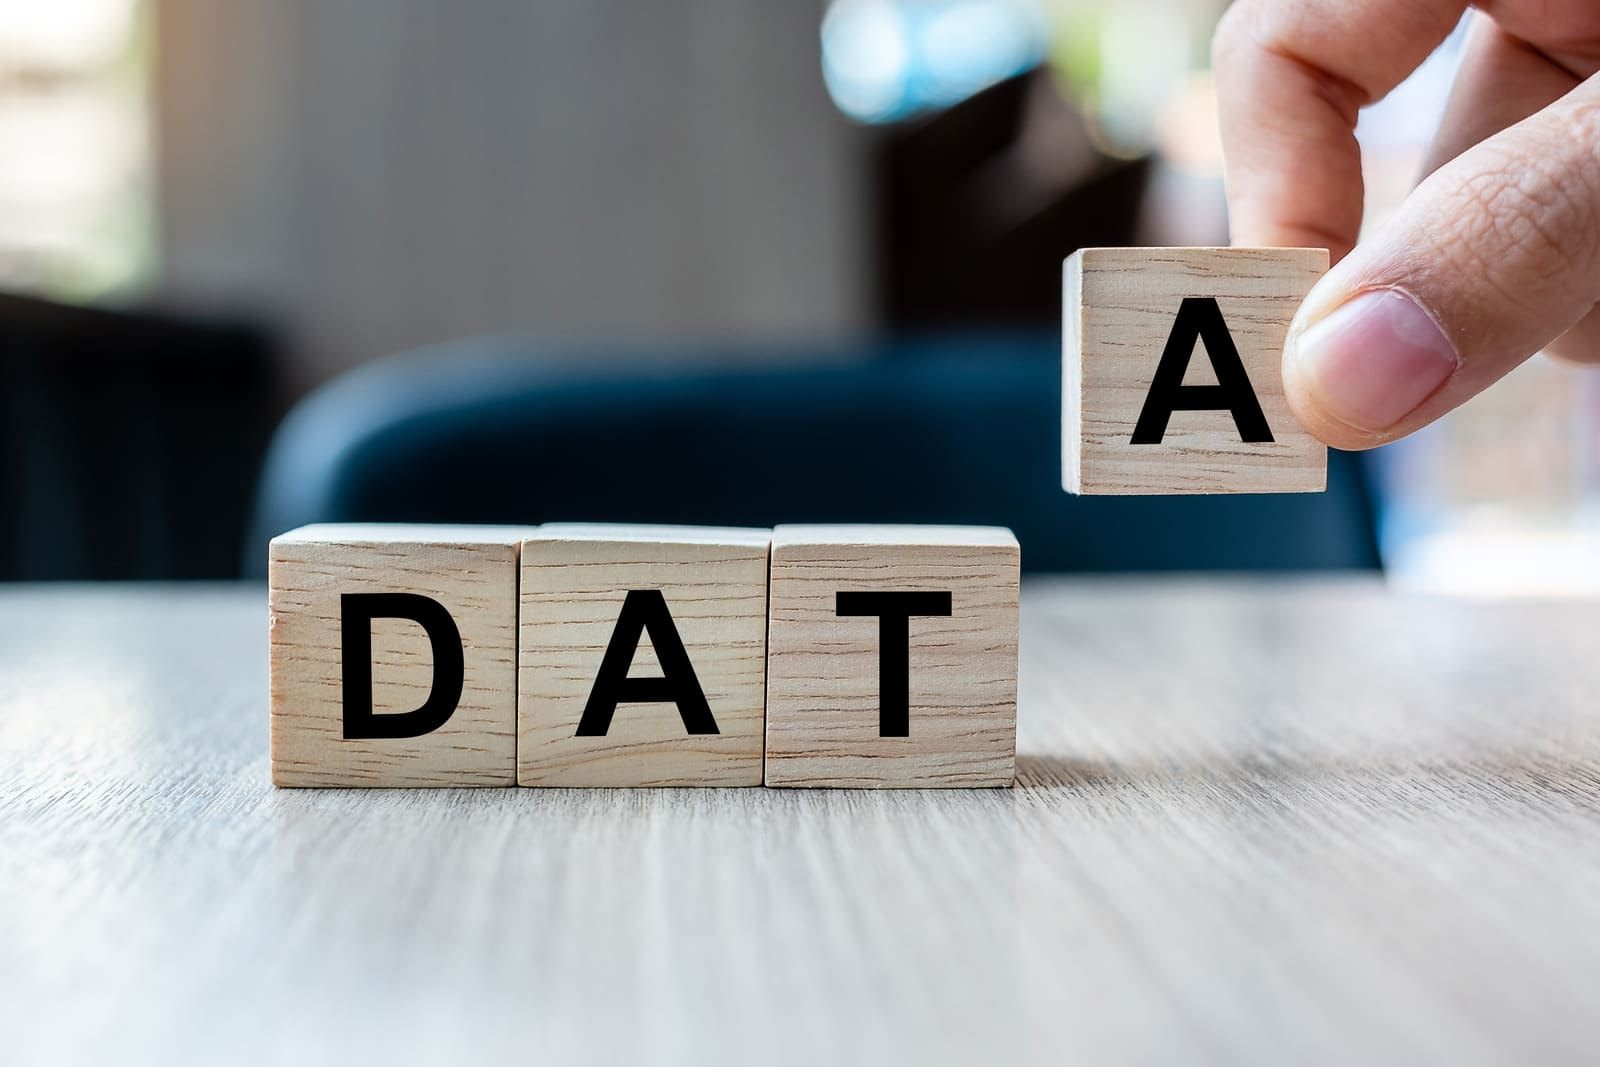 Big Data para empresas: aspectos a considerar